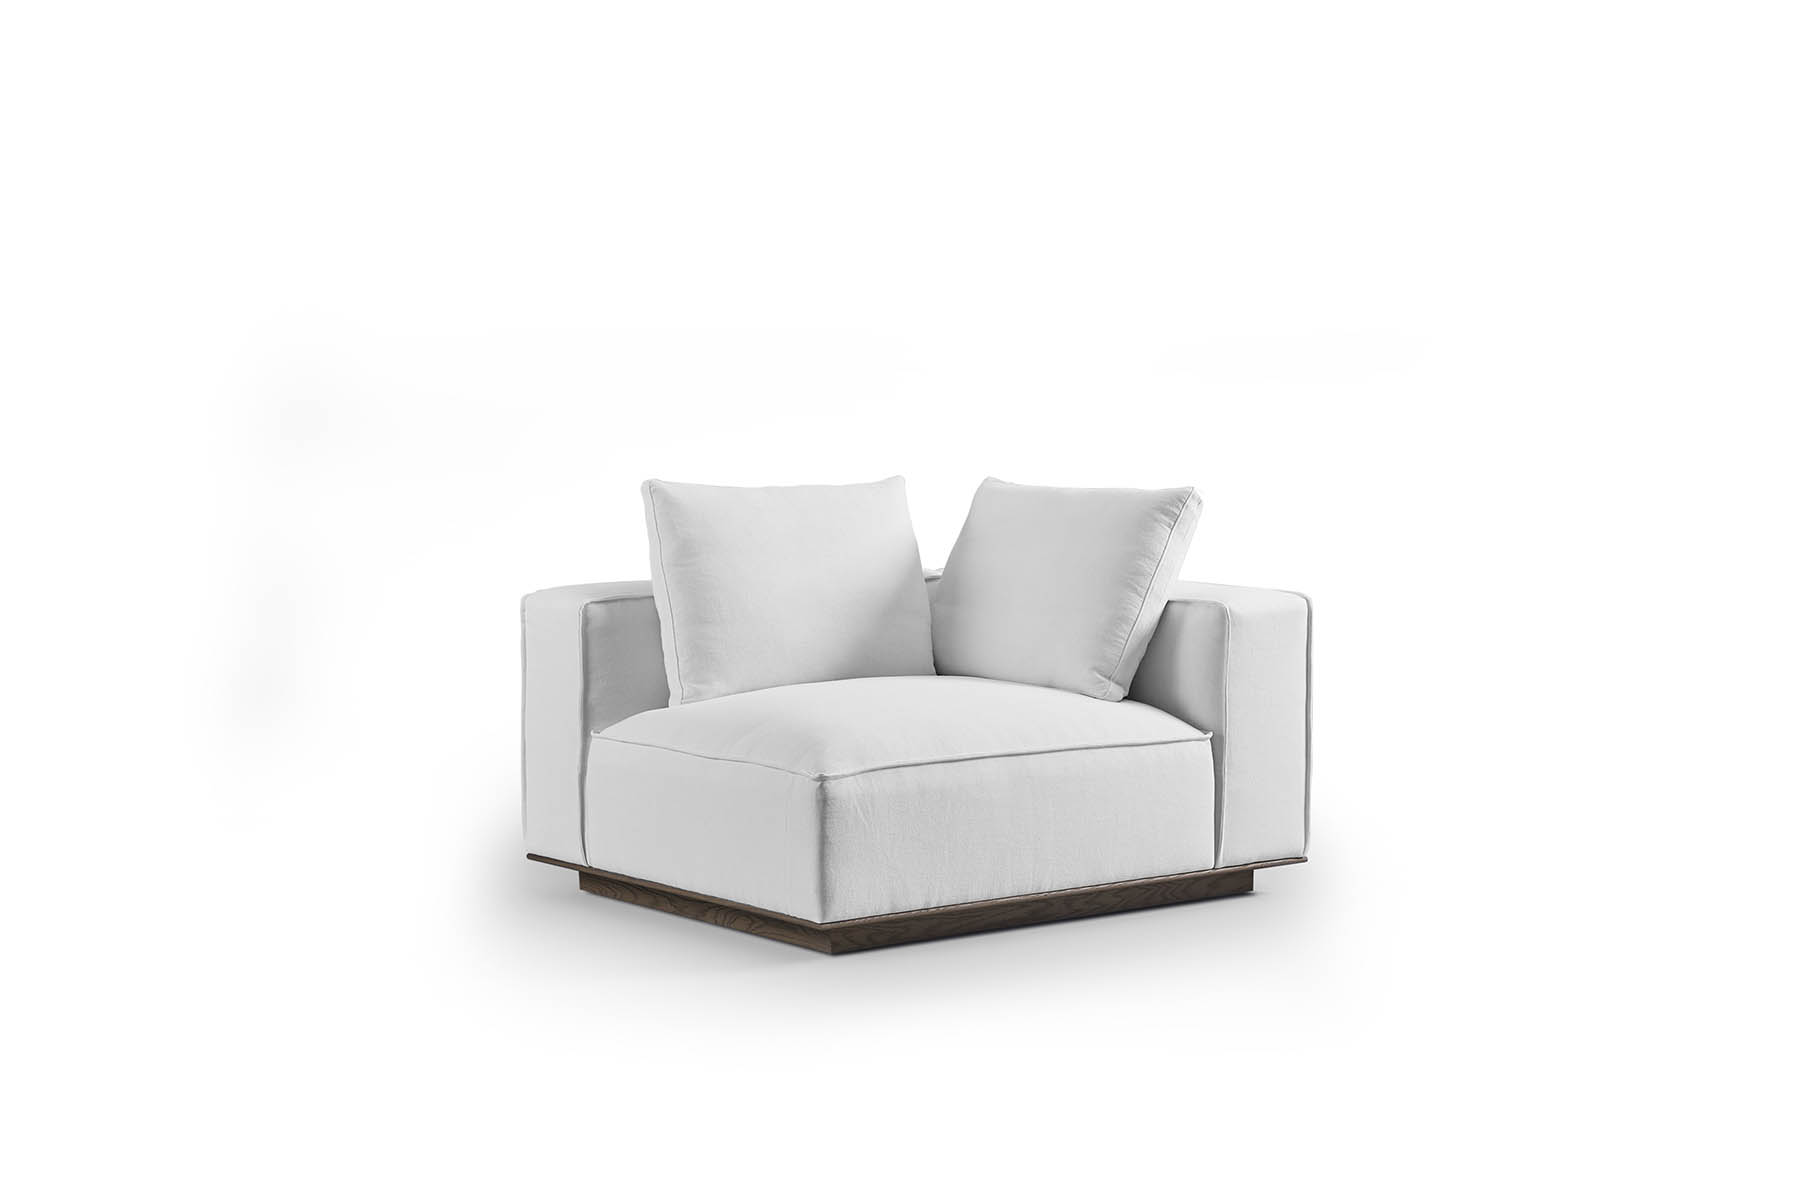 Santorini Single Seat Left Sofa (Indoor)